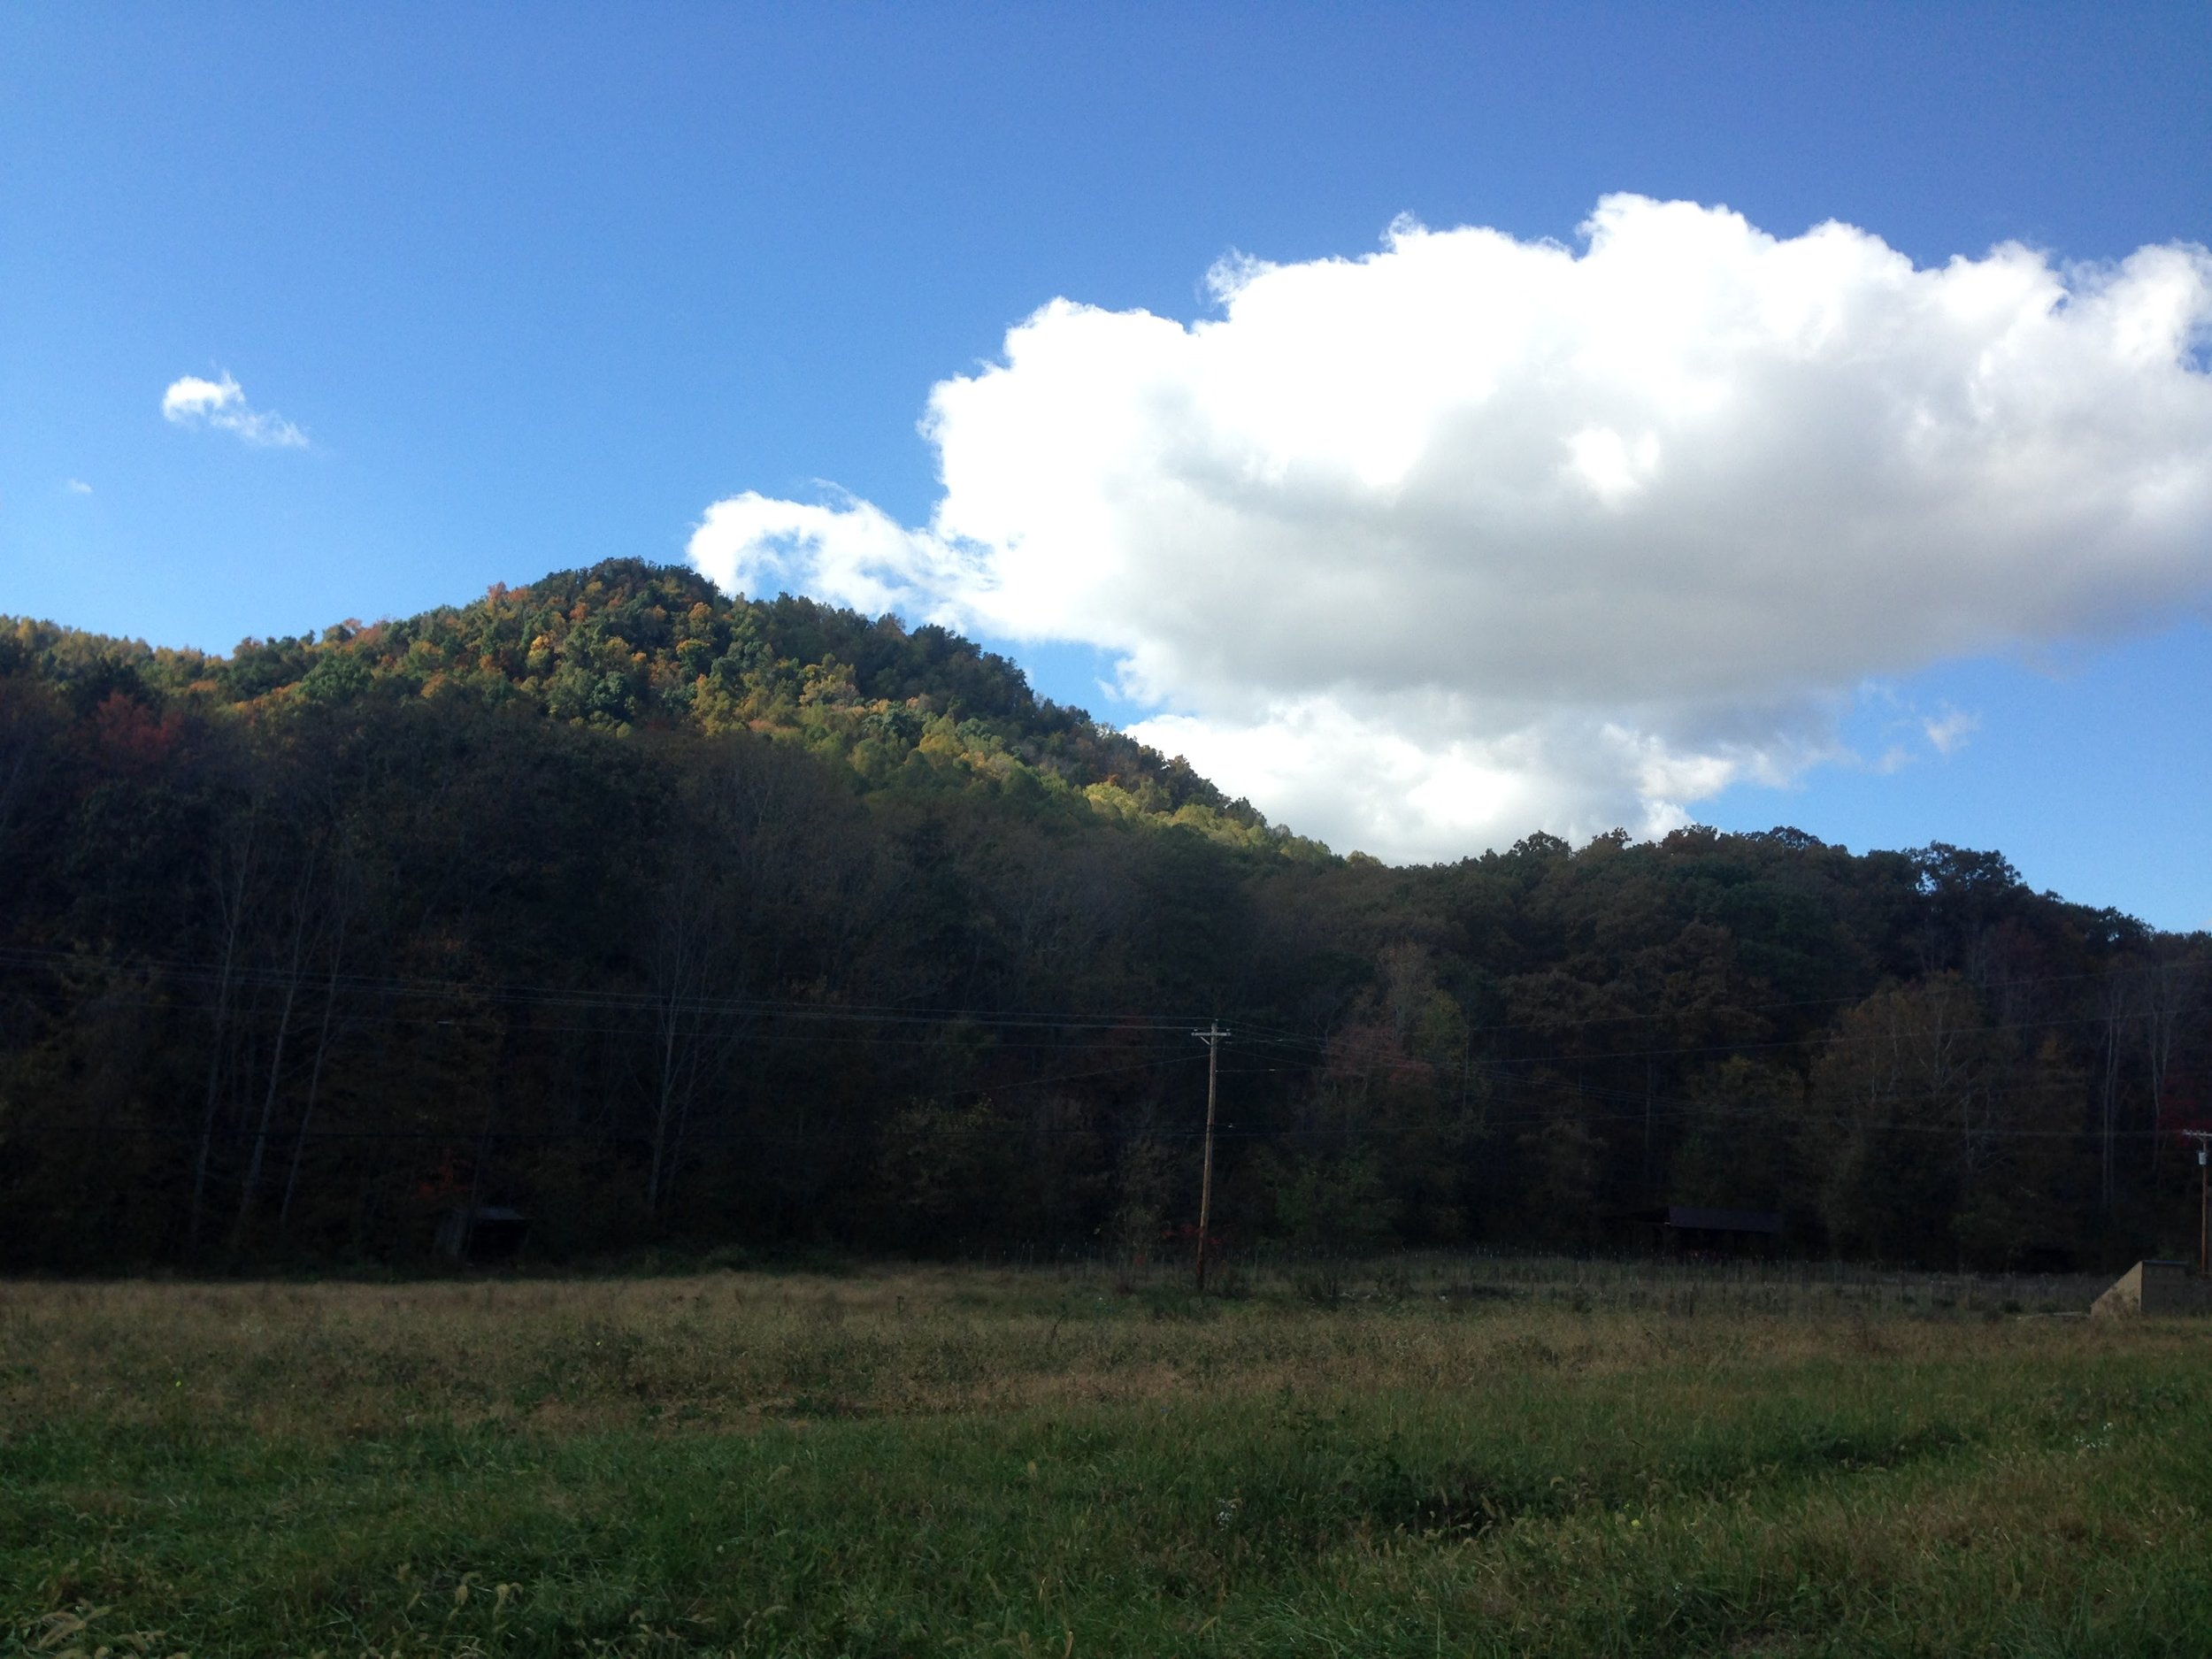 This is Robe Mountain. The Bests own the north face. Daniel and Squire Boone came around it (between it and Mason Mountain) as they were exploring the Kentucky frontier. We know this because Squire carved his name in a rock that now sits in the courthouse.